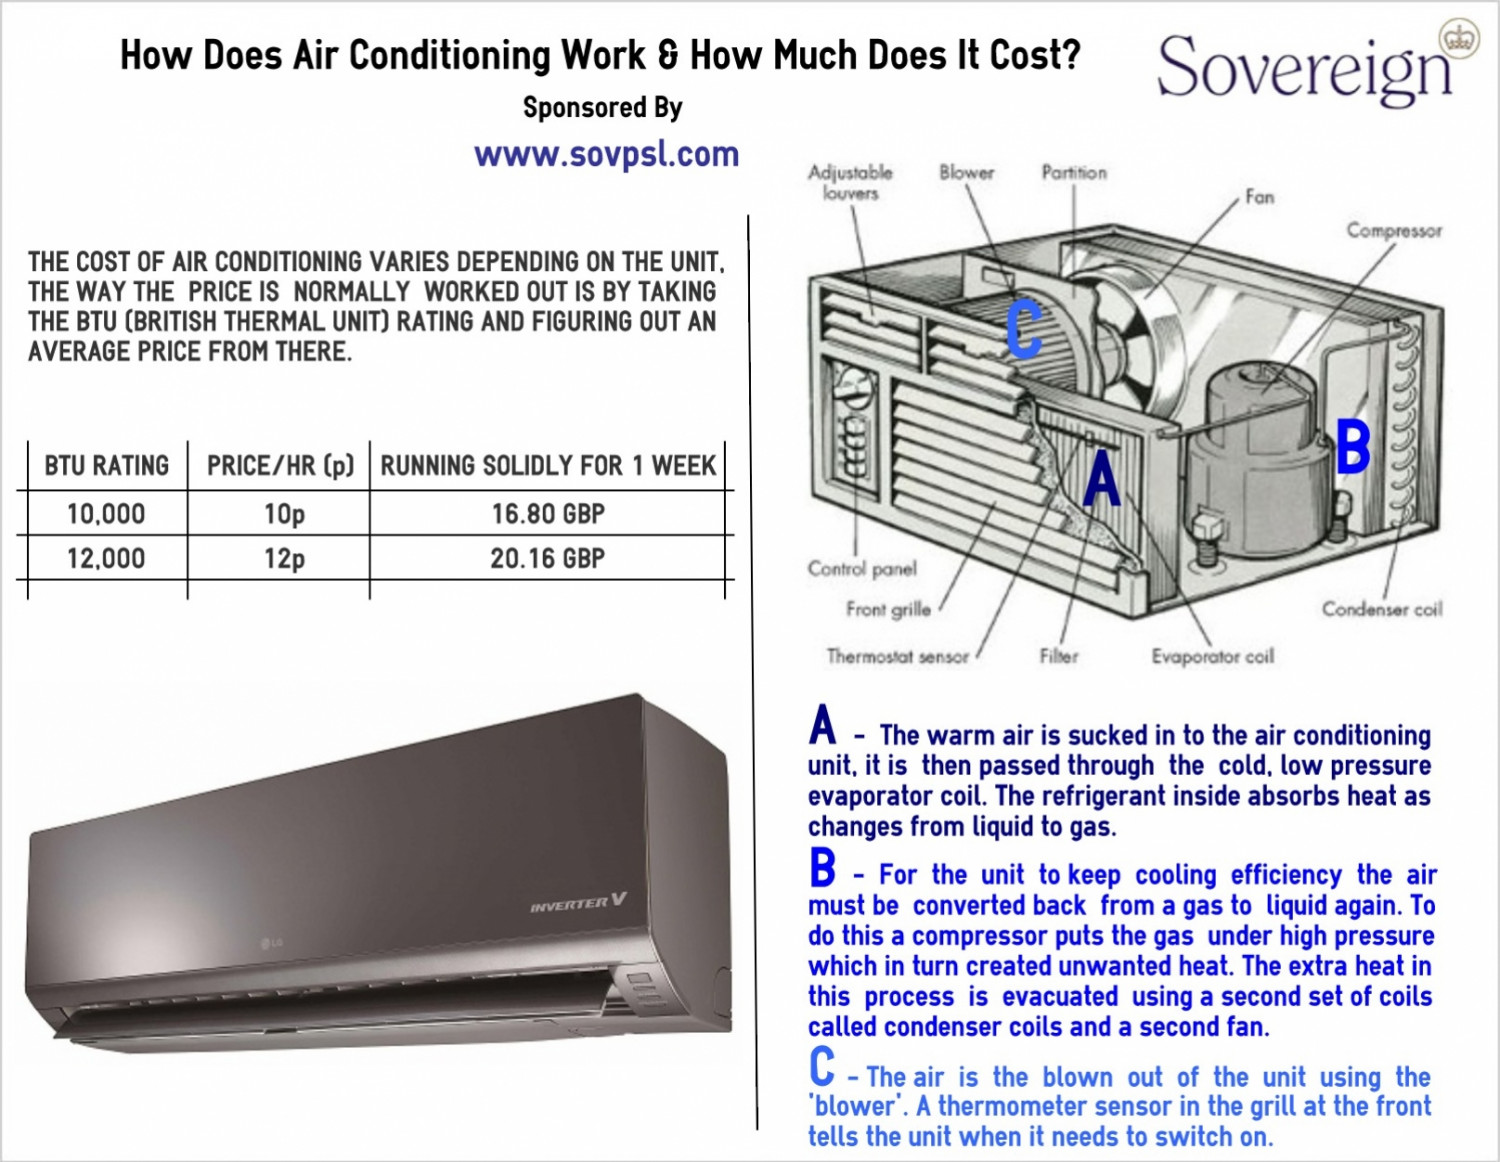 How Air Conditioning Works & How Much It Costs Infographic